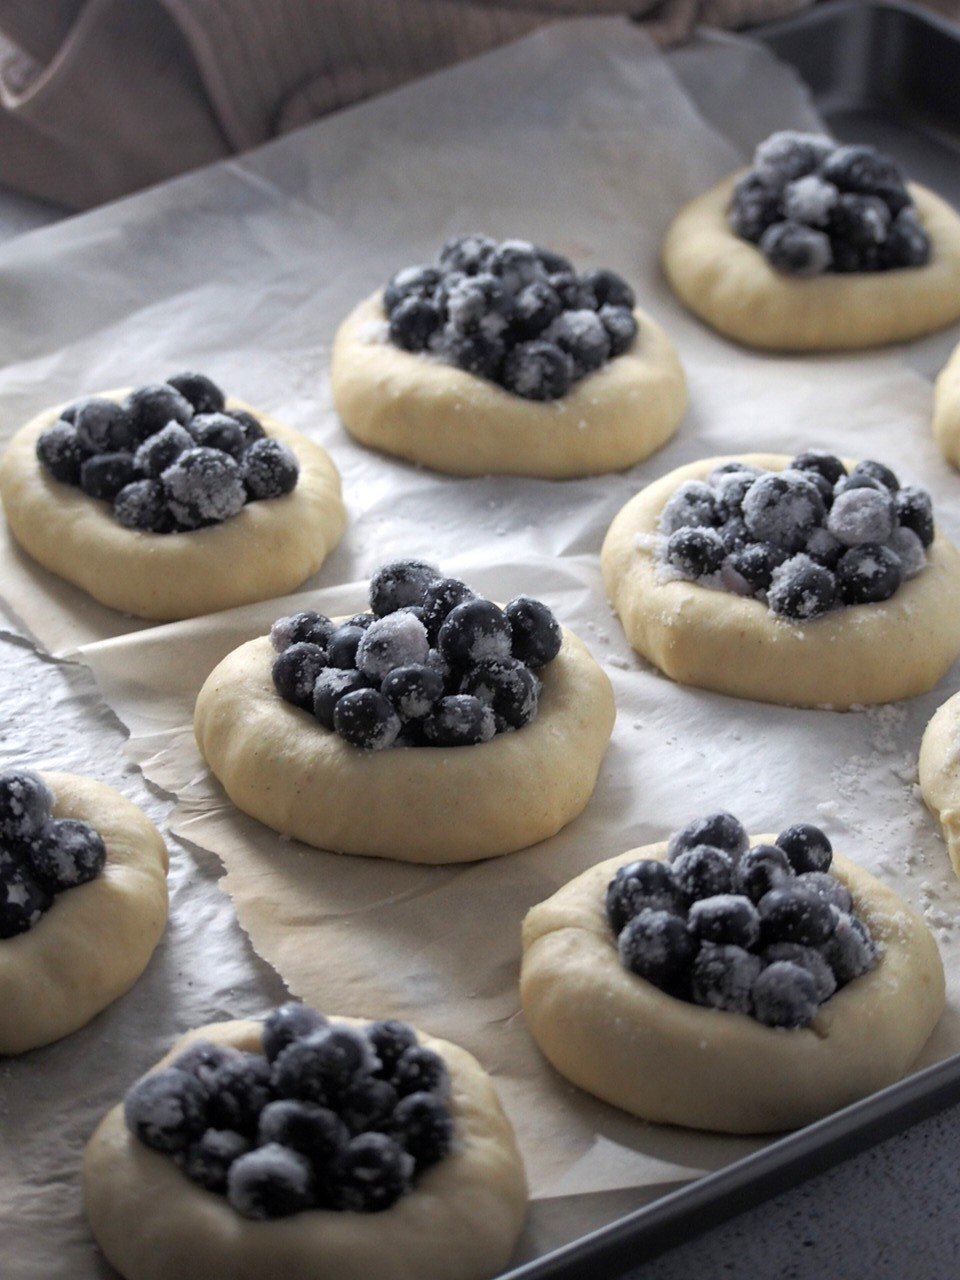 The Finnish Blueberry buns ready for the oven.